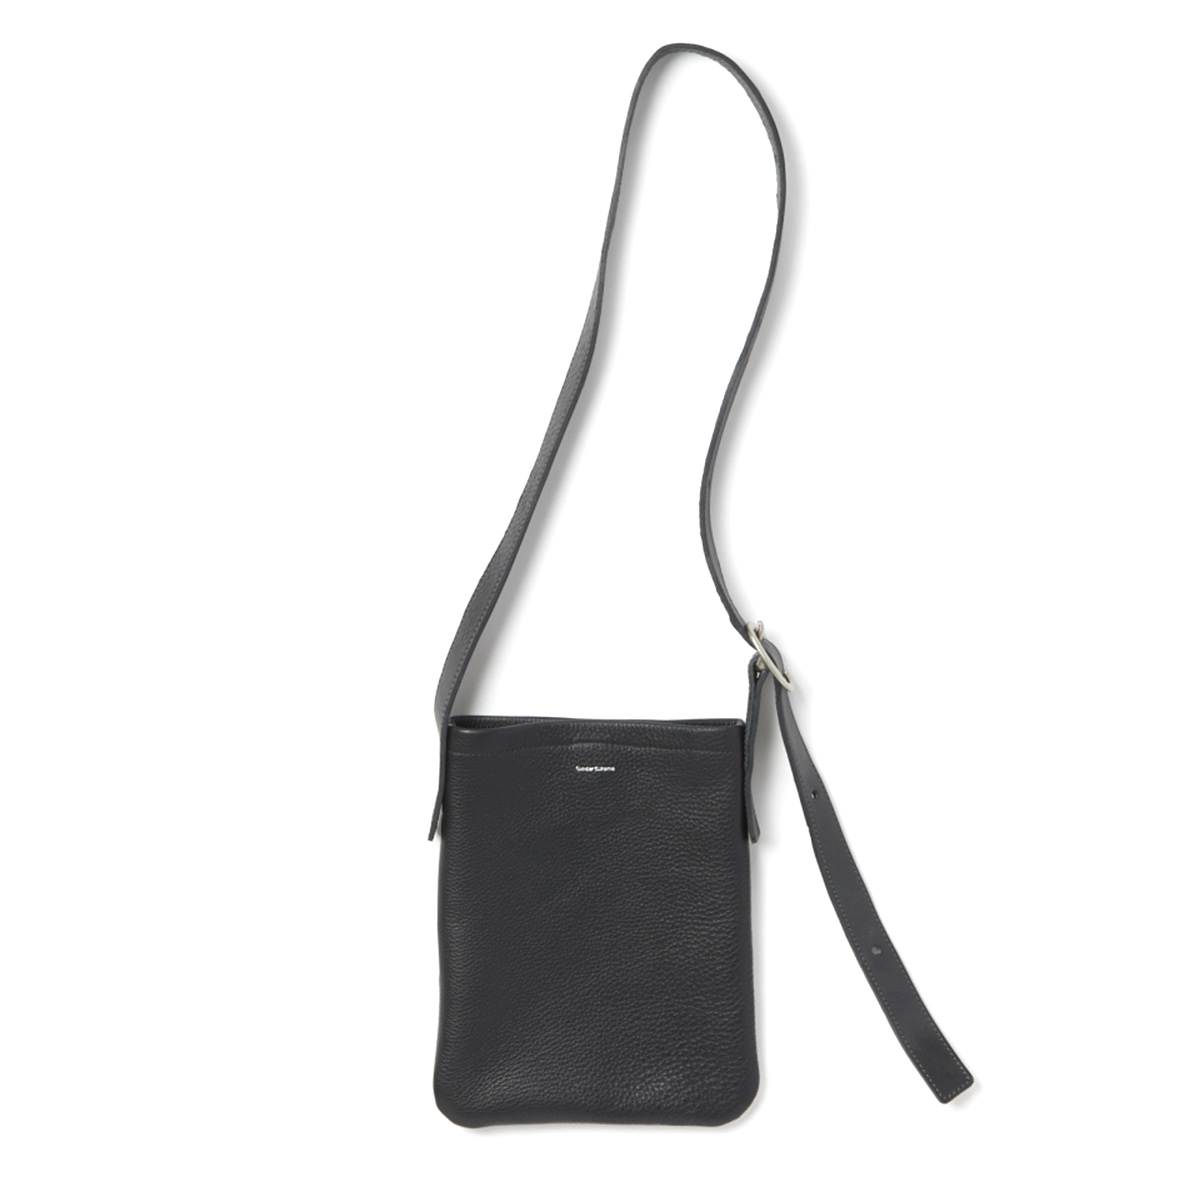 Hender Scheme / one side belt bag small -Black